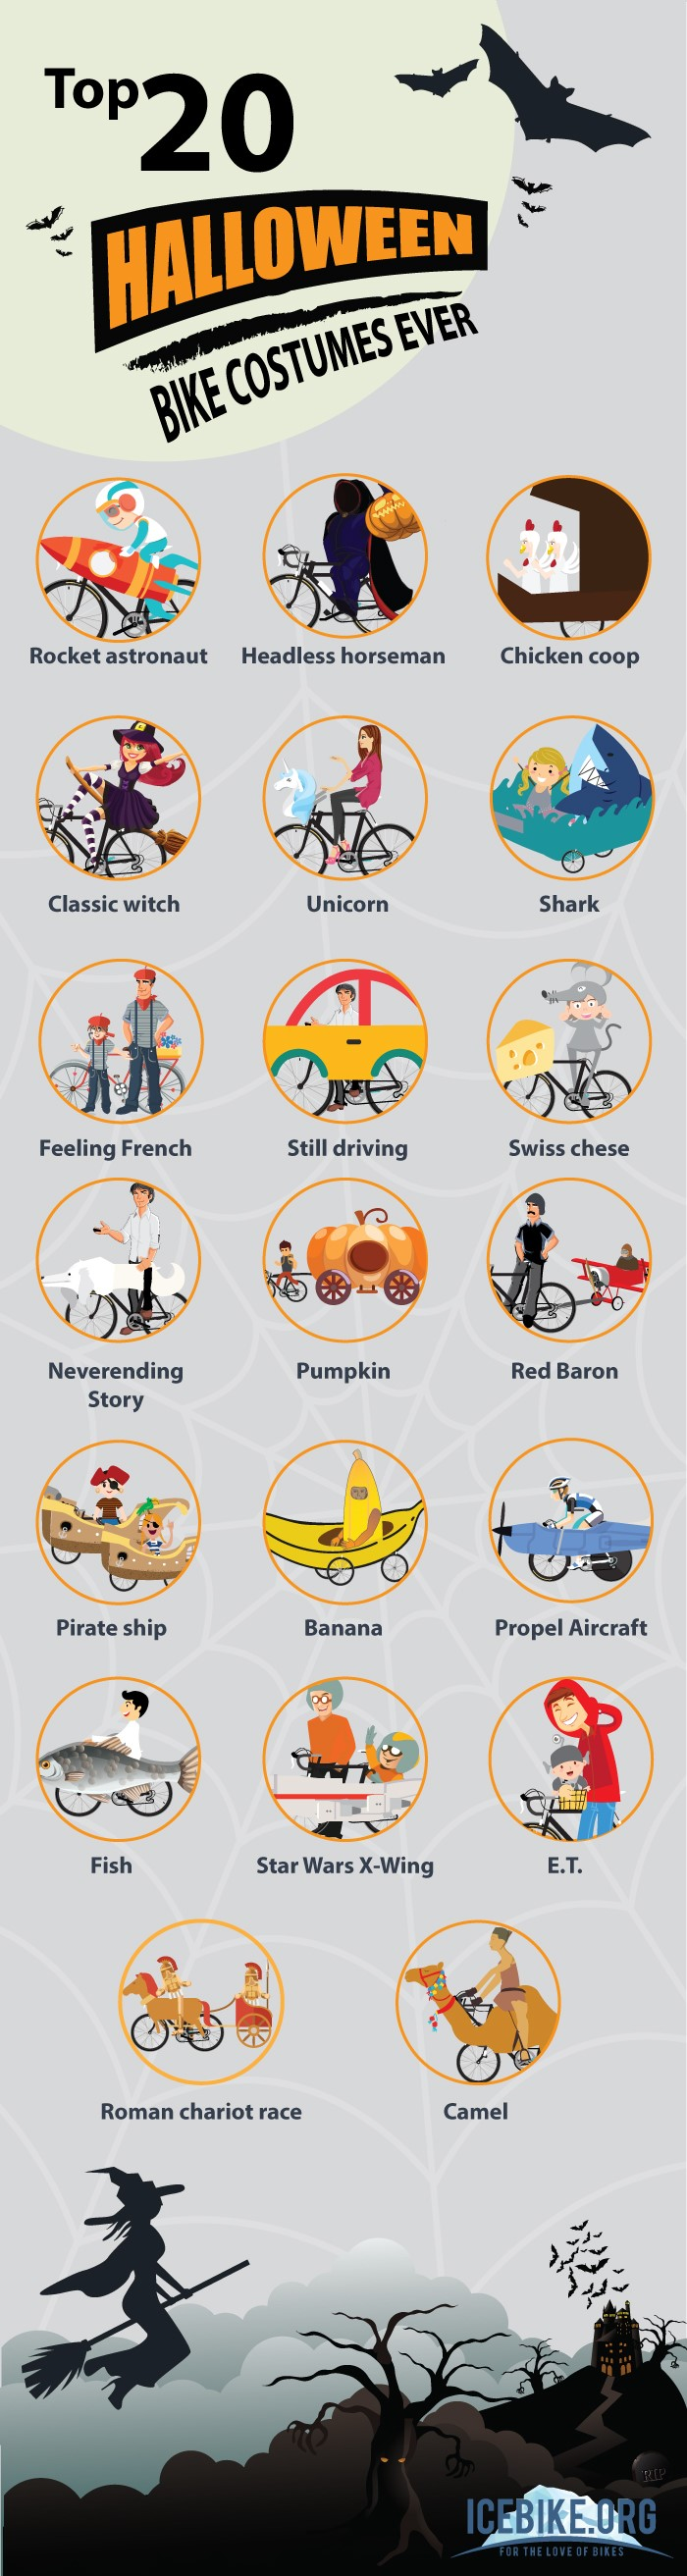 20-ways-you-can-get-your-bike-ready-this-halloween